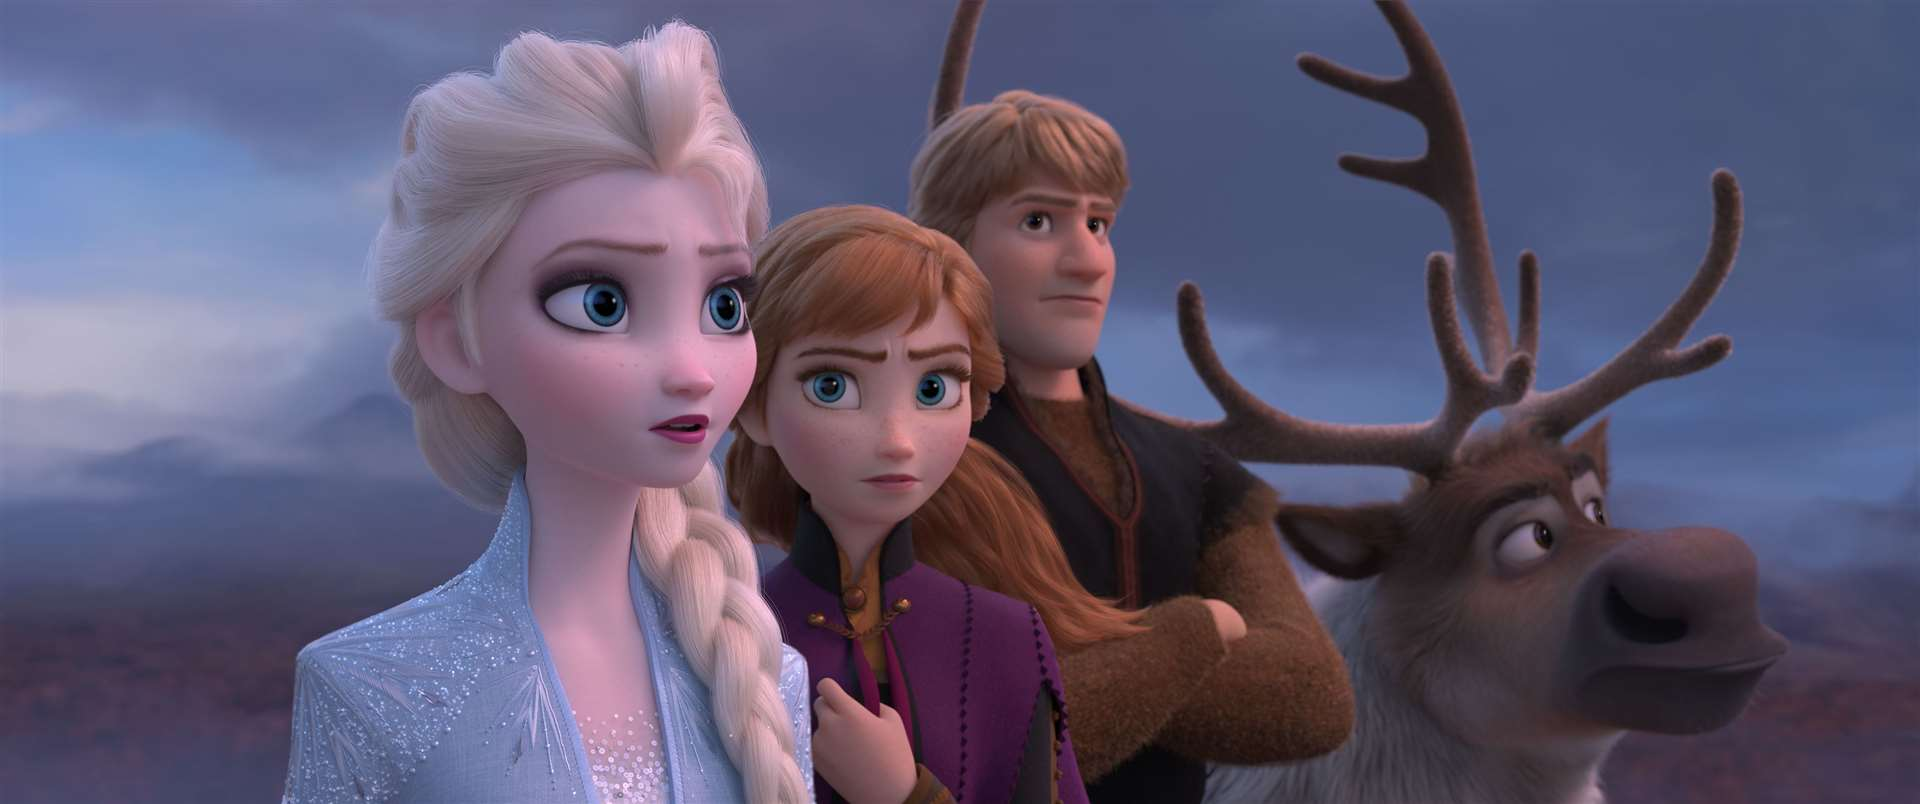 Elsa (voiced by Idina Menzel), Anna (Kristen Bell), Kristoff (Jonathan Groff) and Sven the reindeer. Picture credit: PA Photo/Disney. All Rights Reserved.